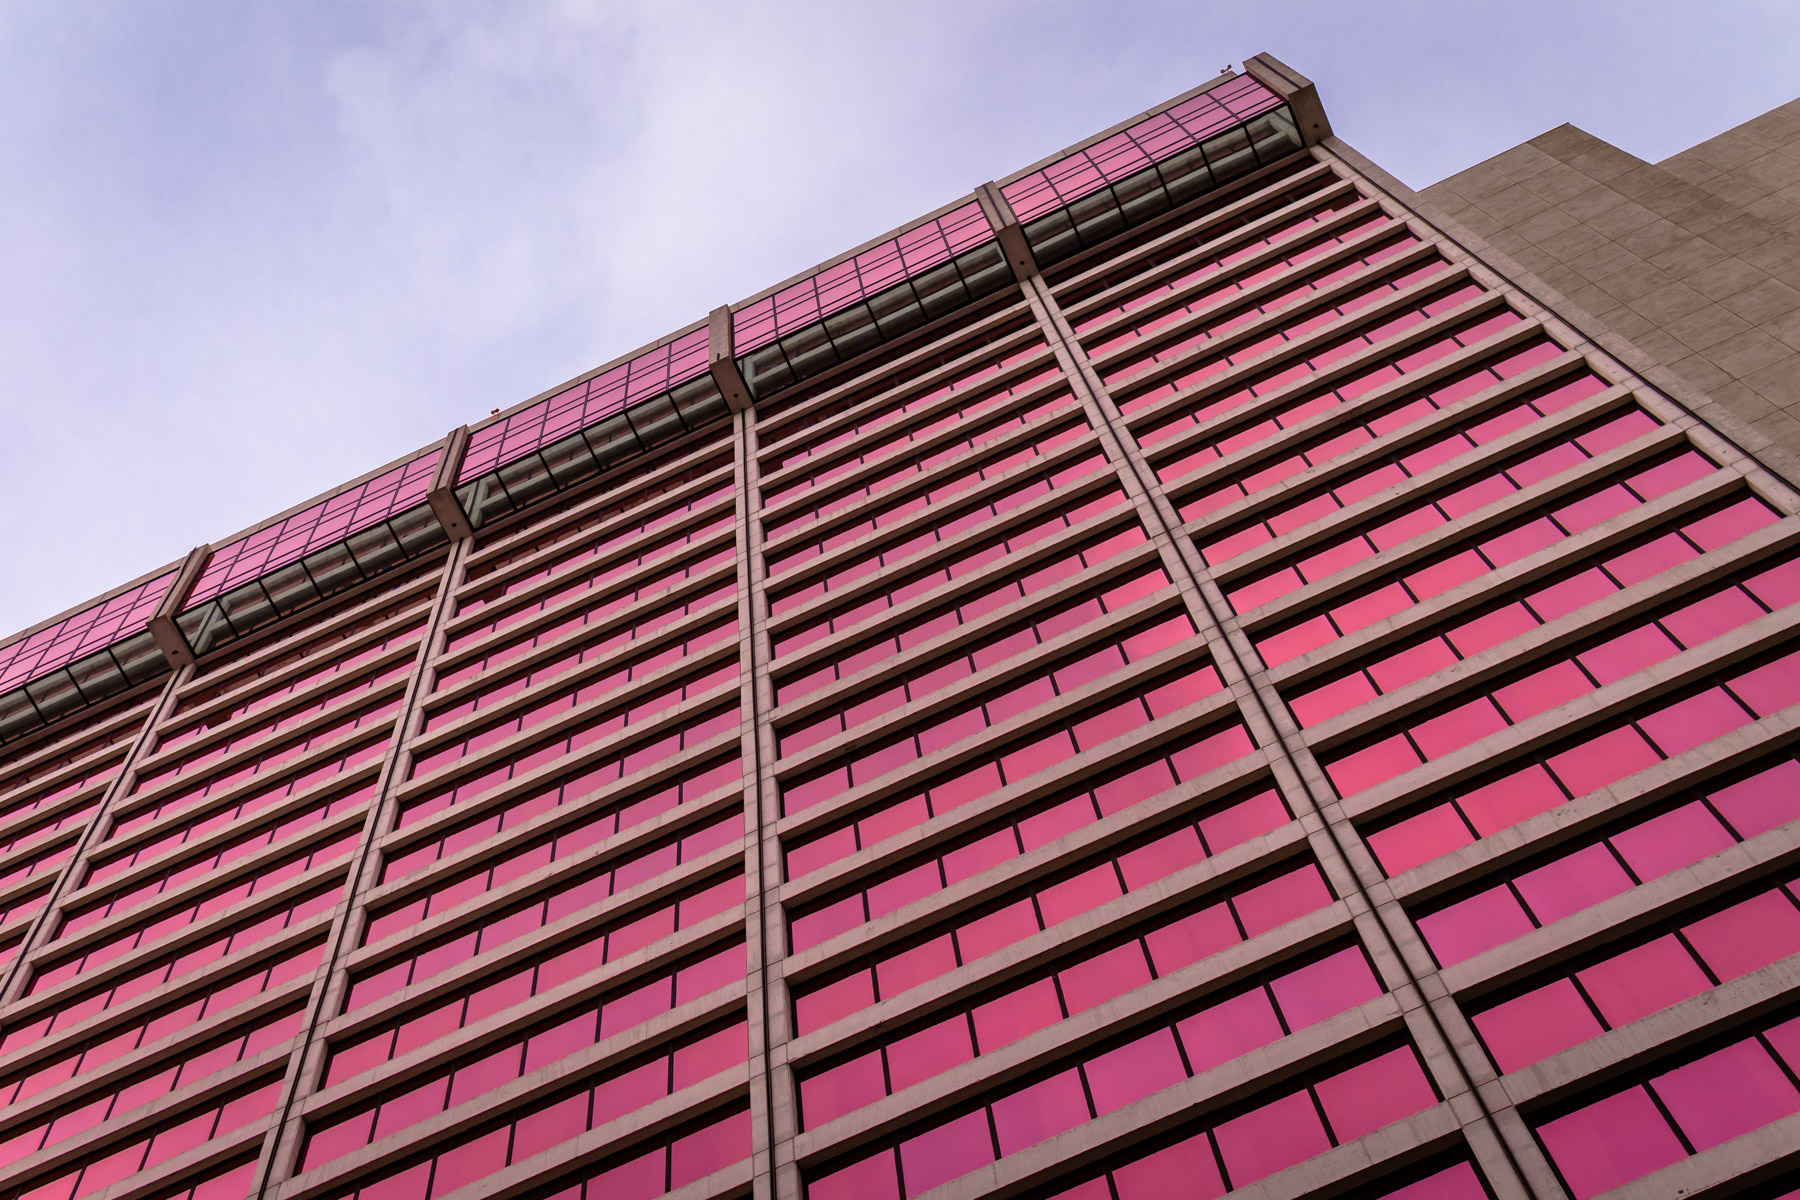 The Flamingo Las Vegas Hotel and Casino rises into the Nevada sky.